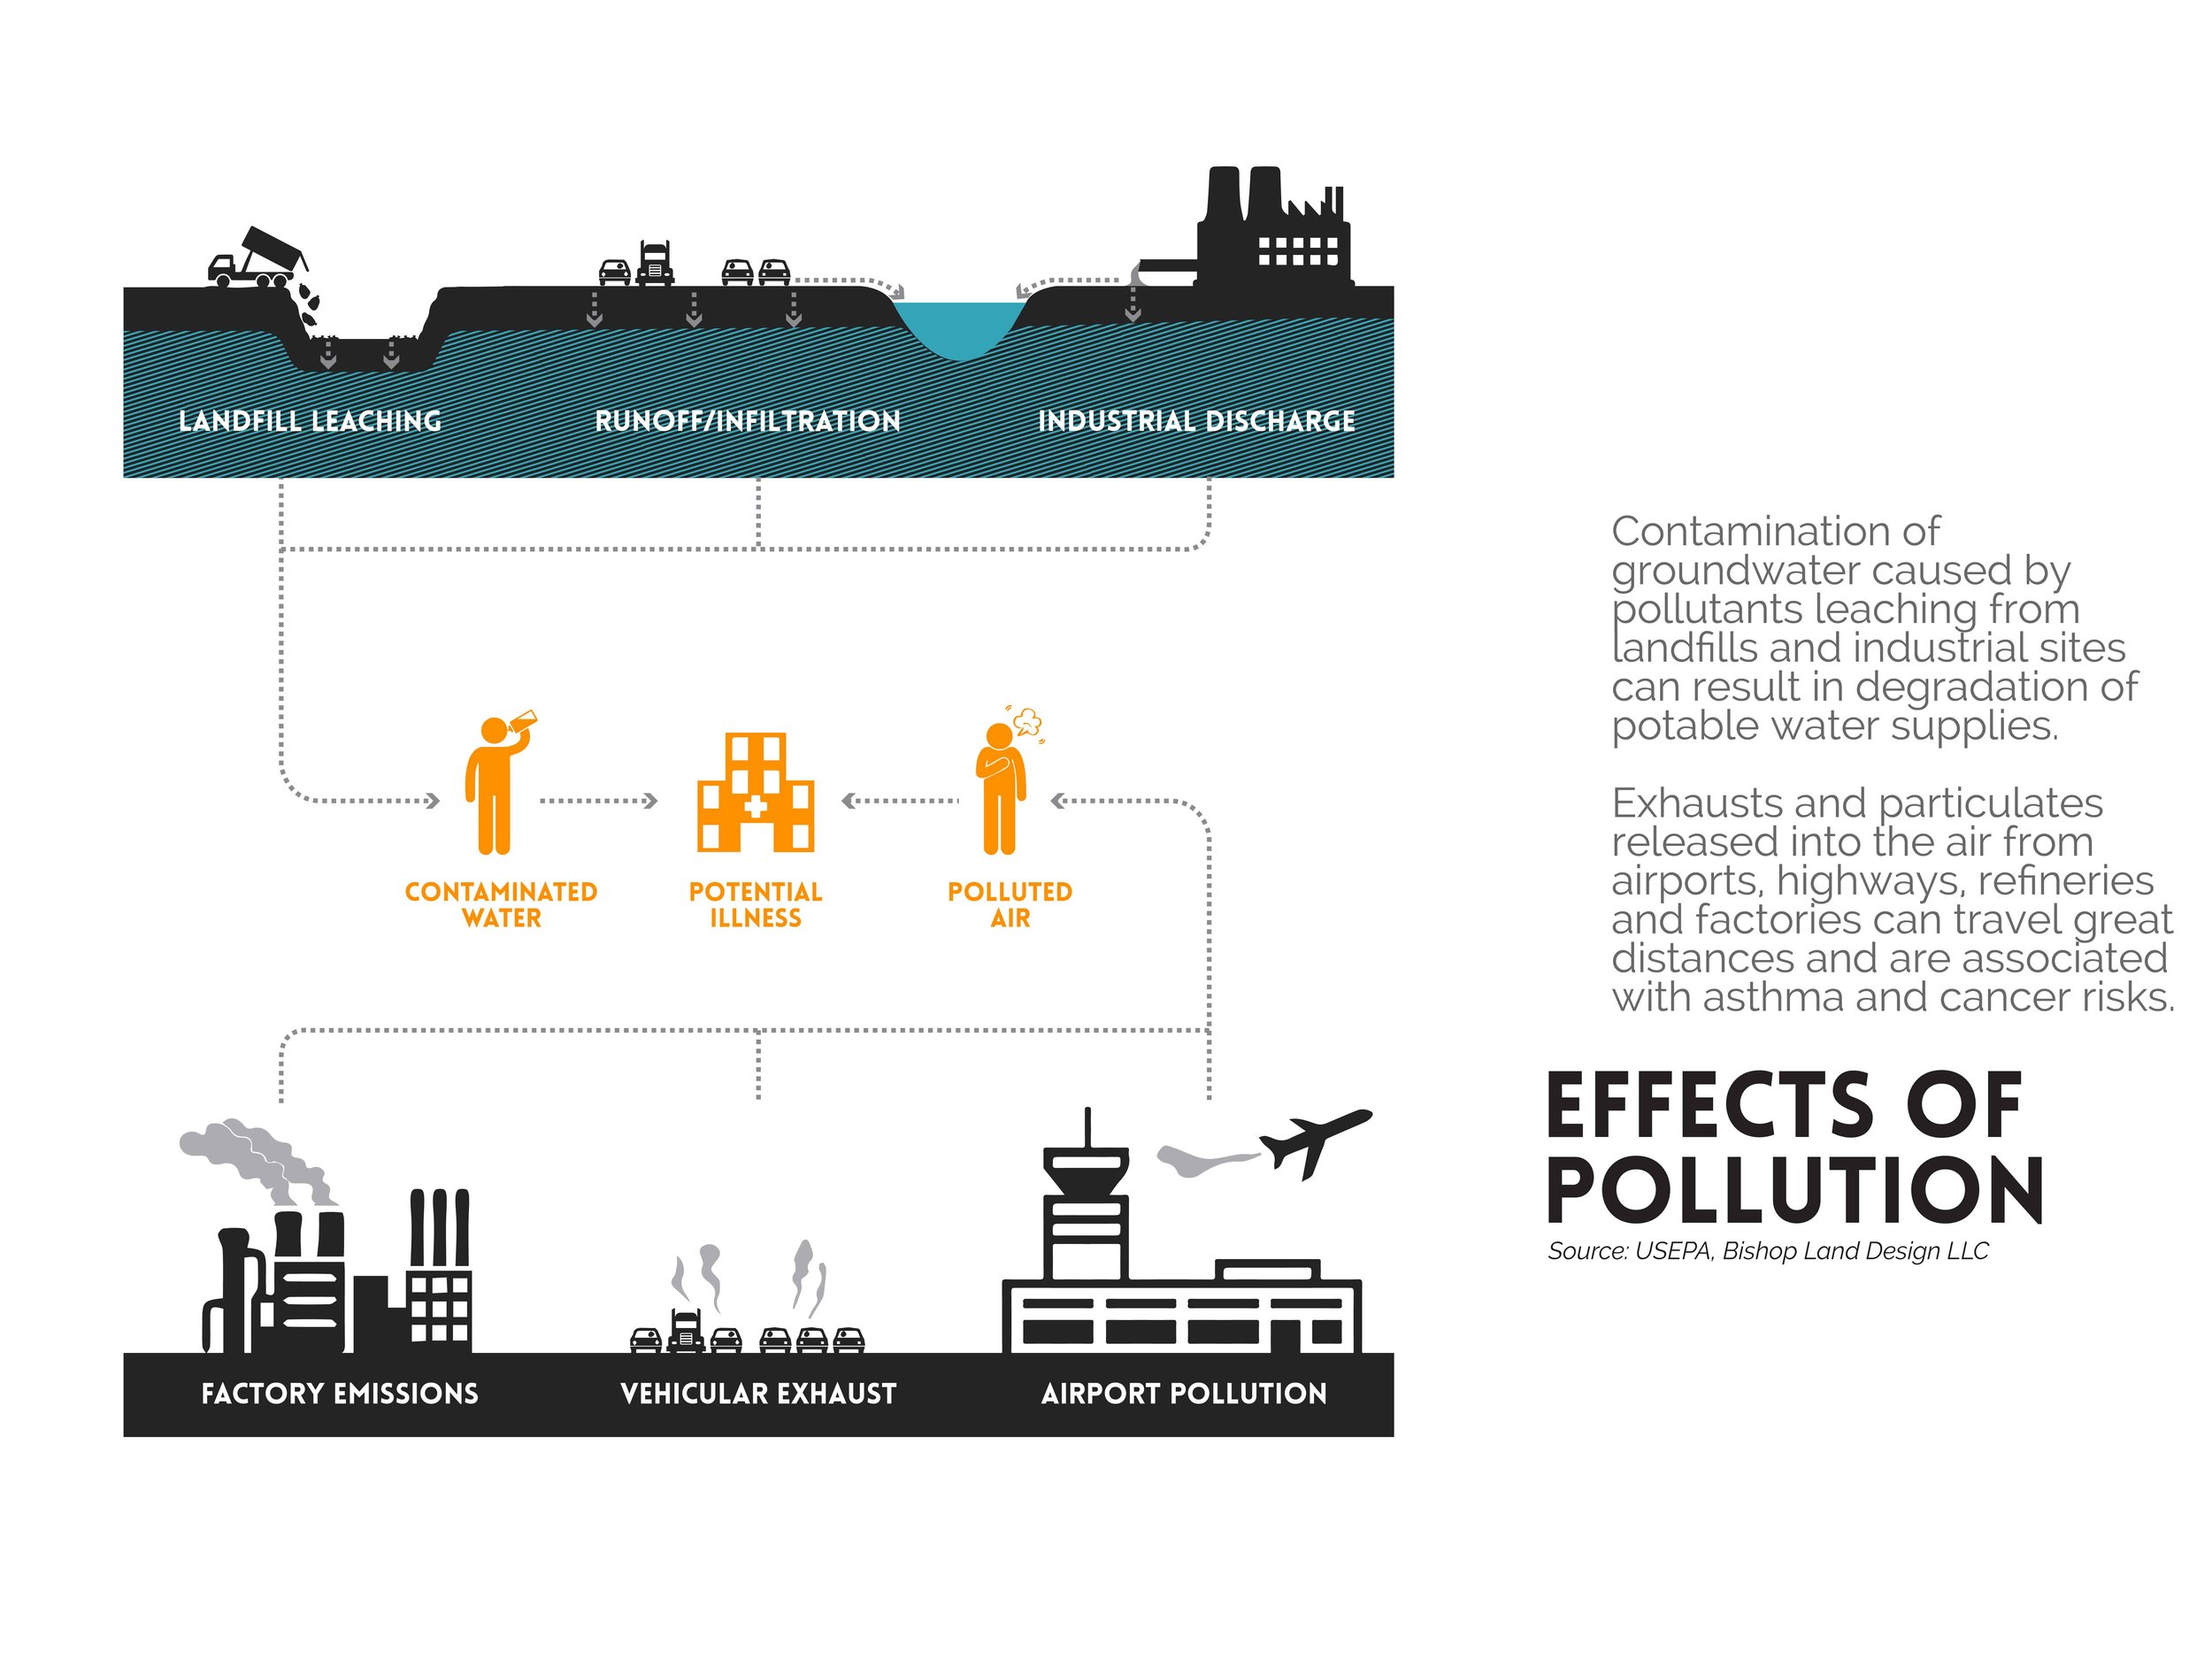 BLD_Eastwick_Pollution_Sources-02.jpg